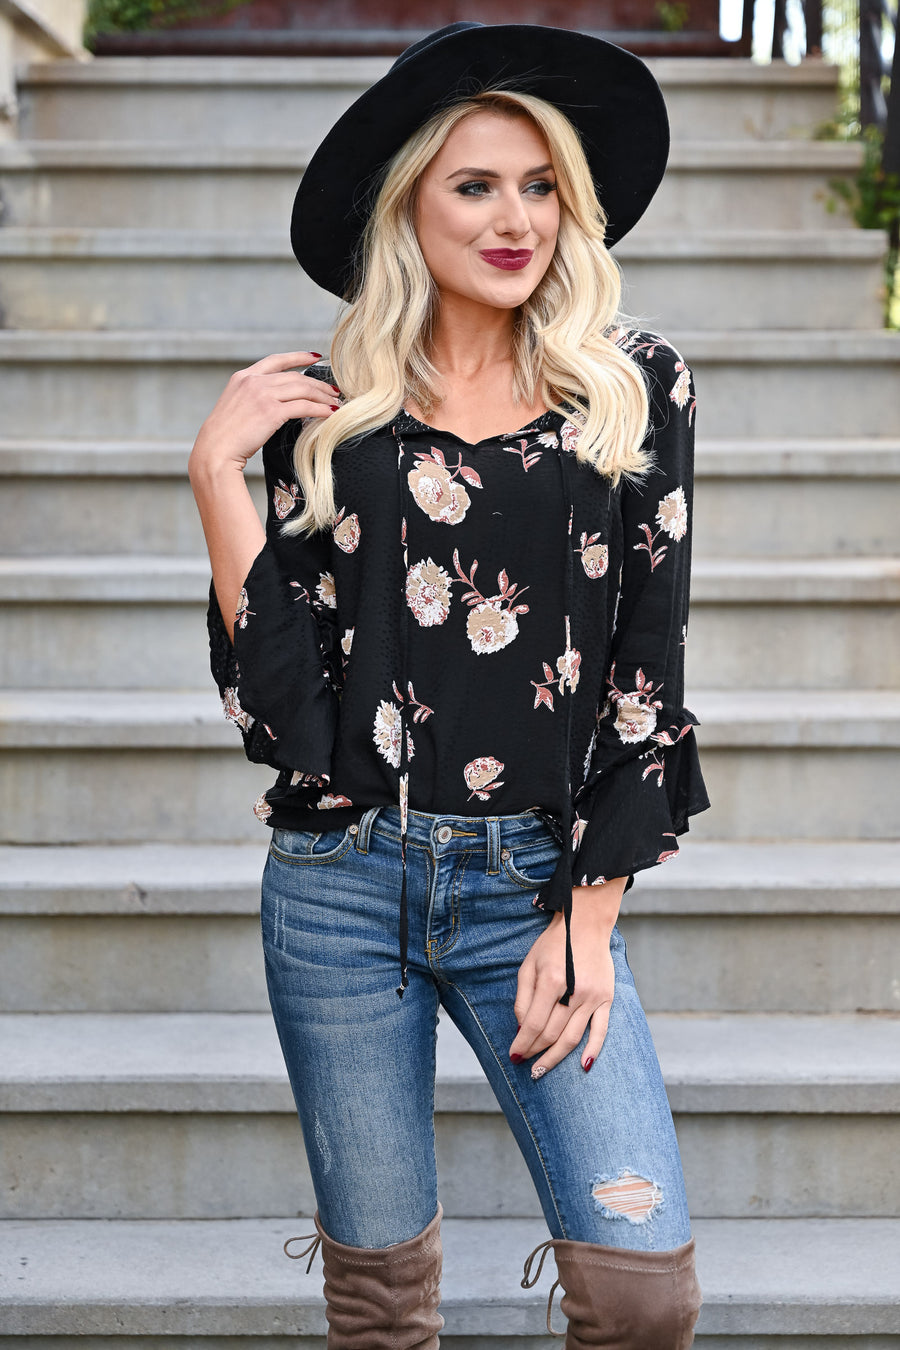 EVERLY With You Floral Top - Black womens floral print 3/4 sleeve self-tie top closet candy front